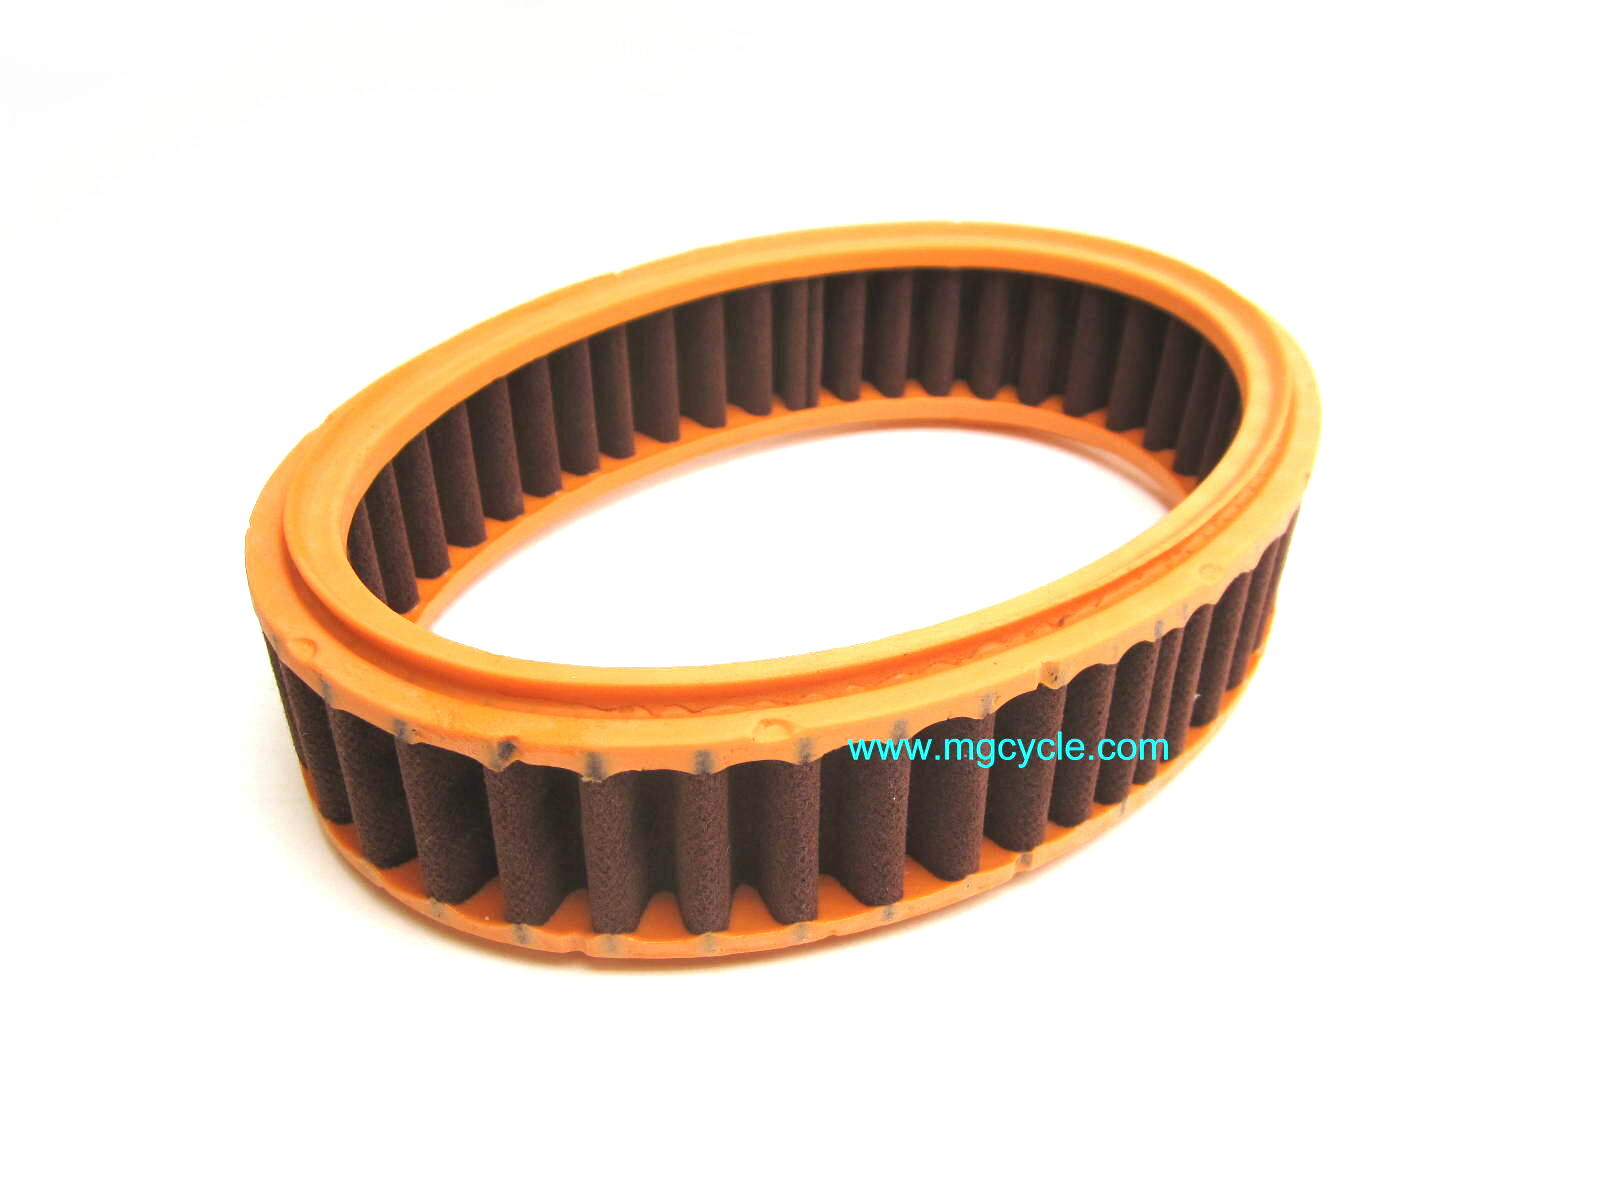 Air filter for original Eldorado, Ambassador, V700 air box